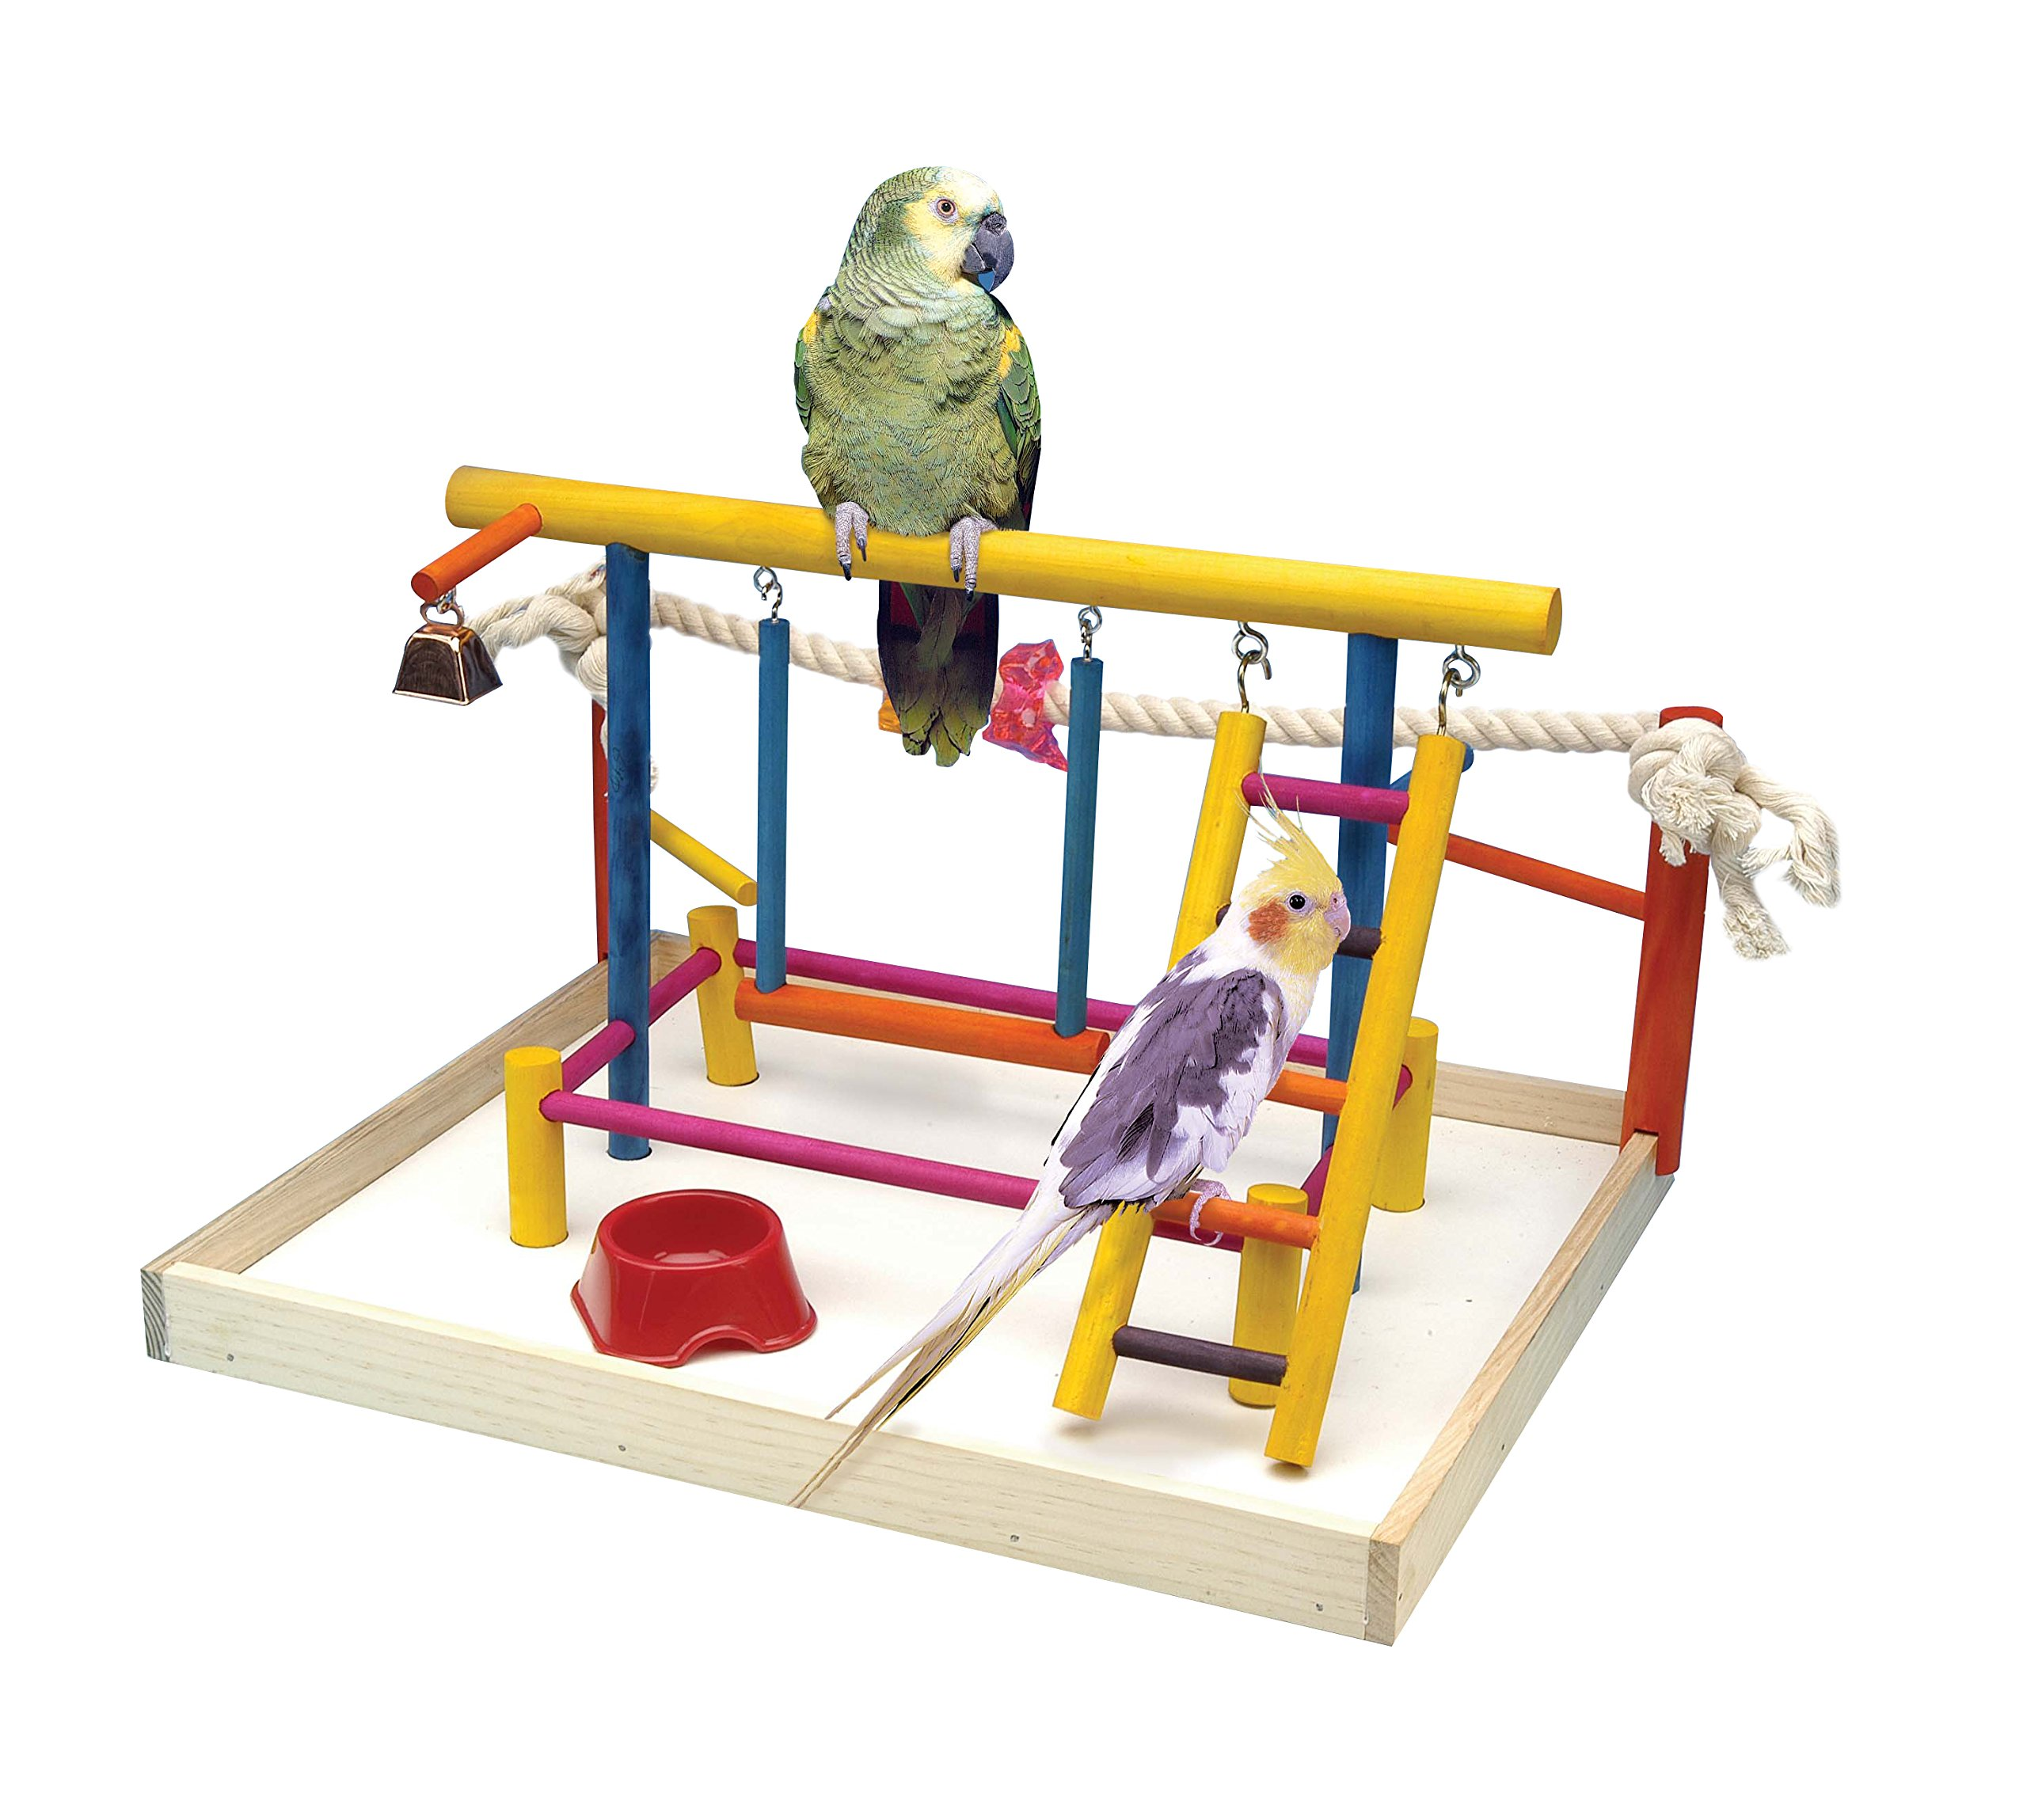 Penn Plax BA148 Bird Toy Activity Center With Perches, Ladders, Bell, and Rope Large 18.5 Inch Height